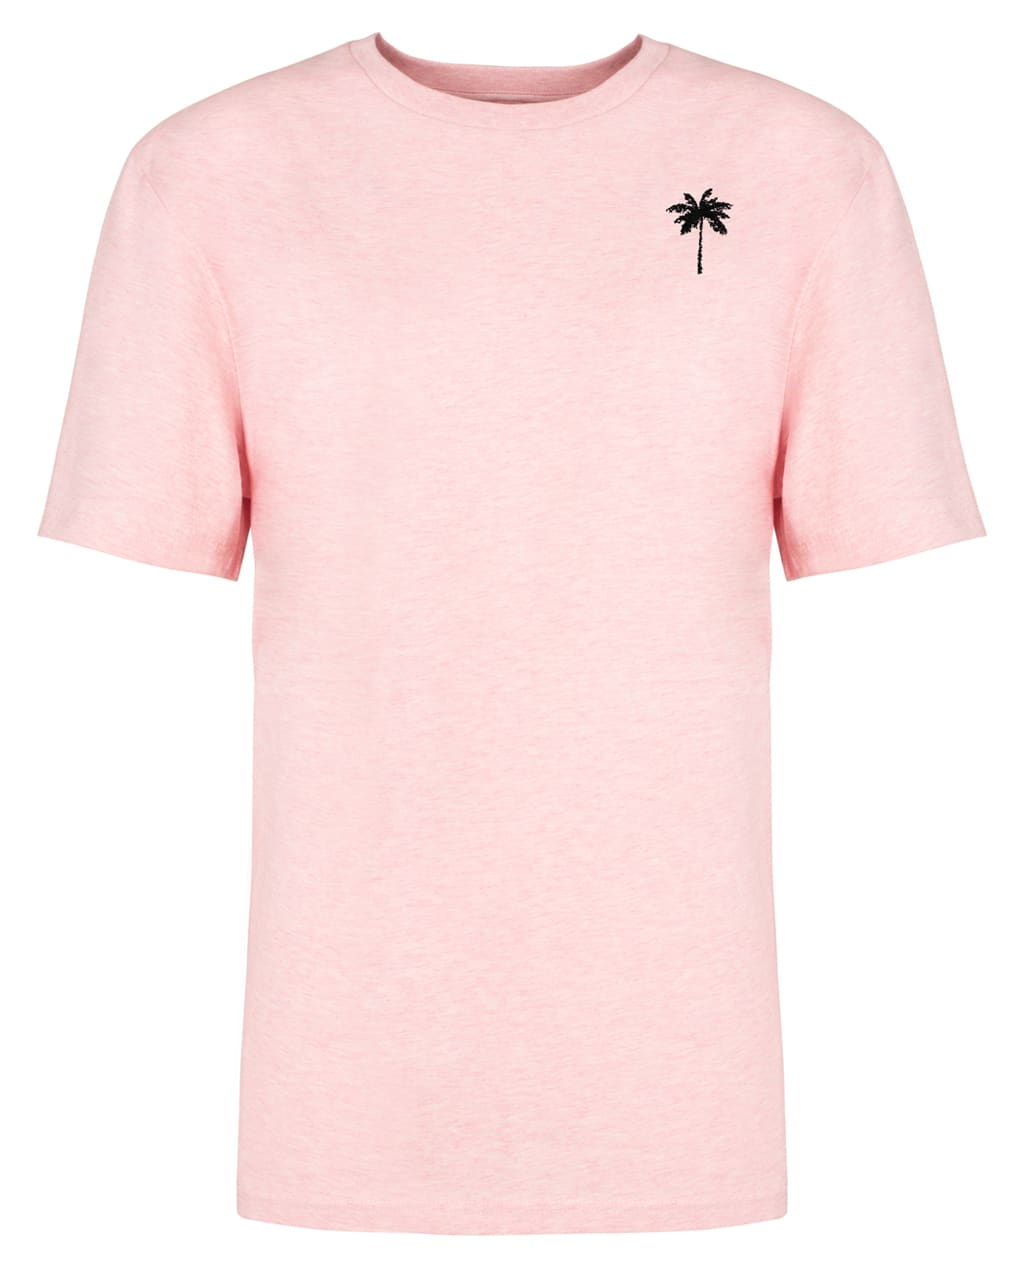 Palm Tree Embroidered T-Shirt Pink